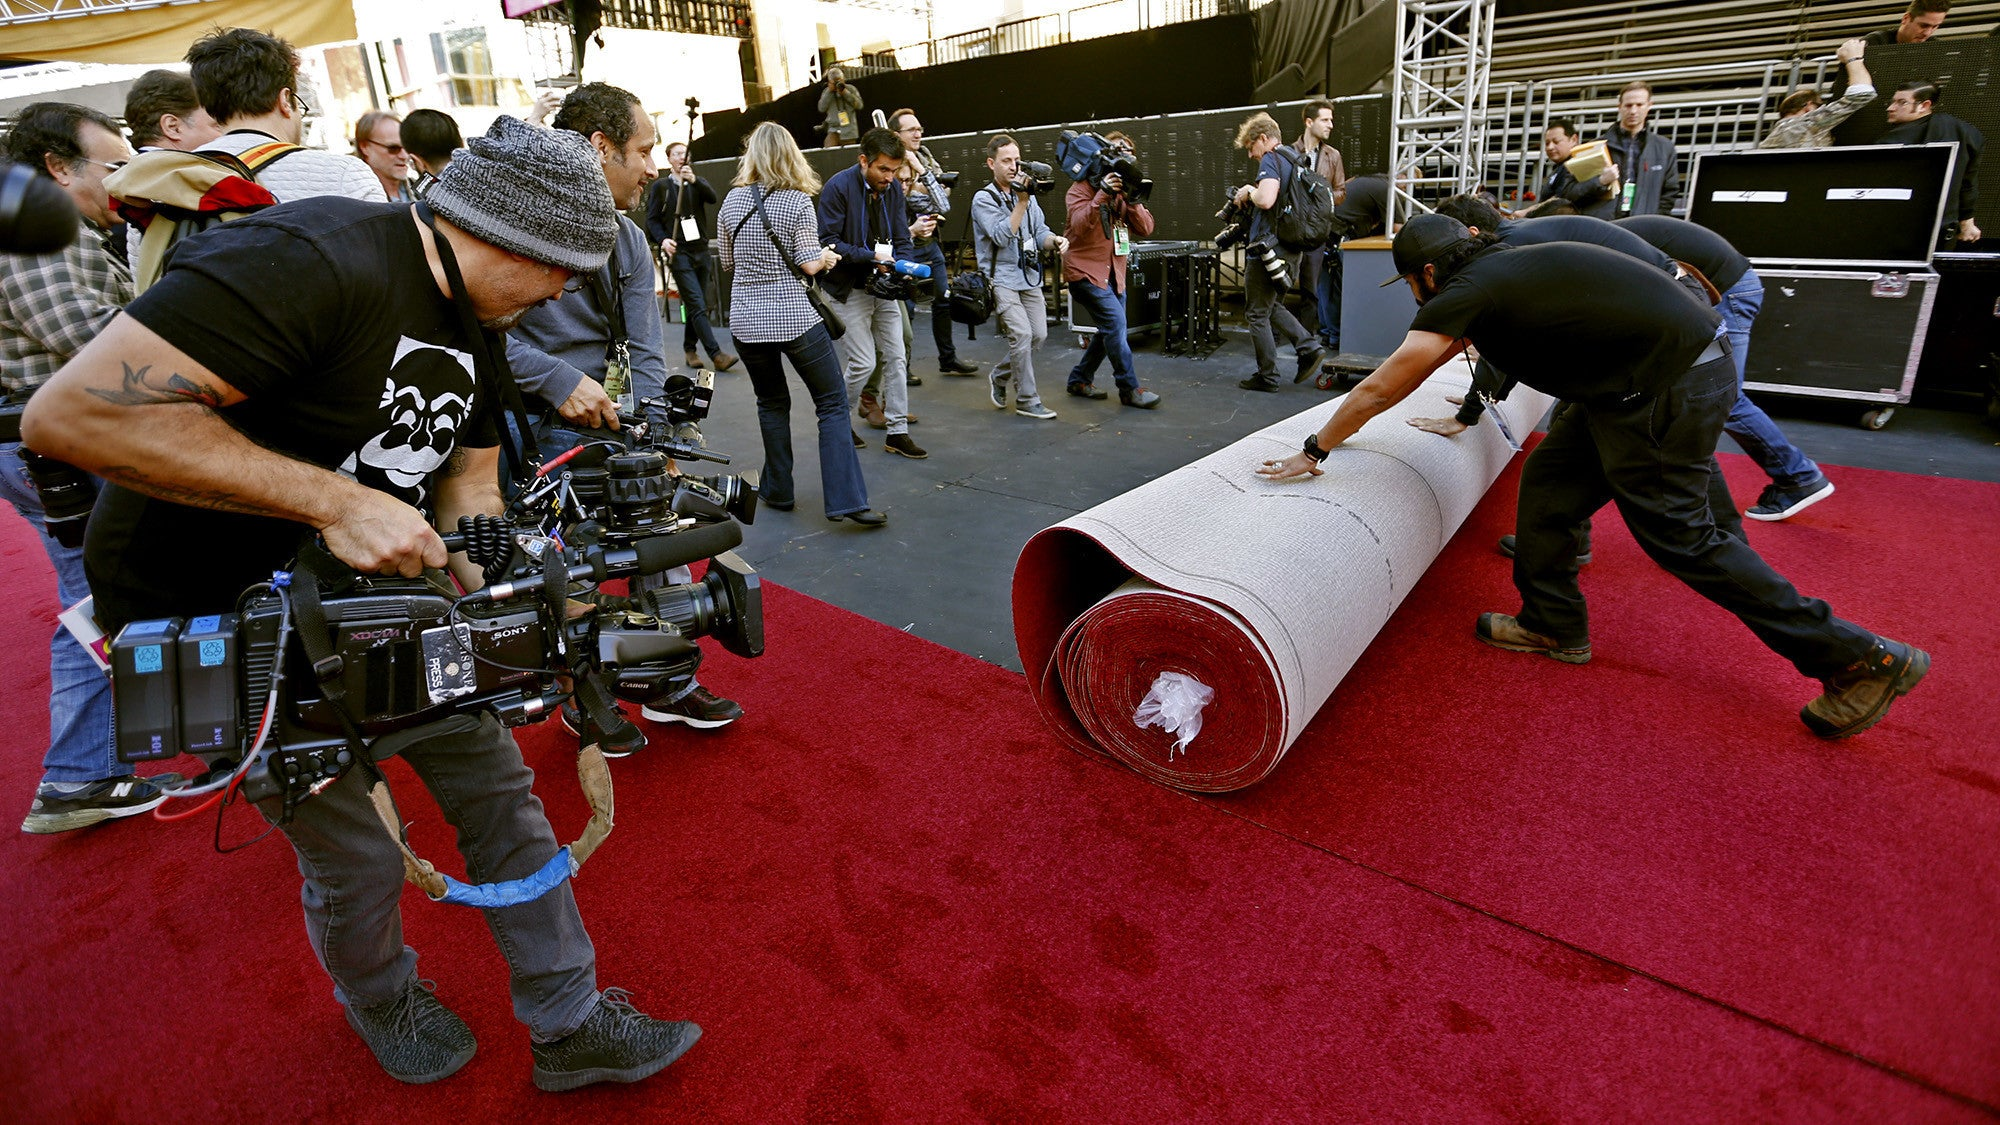 Qikipedia: Roll Out the Red Carpet